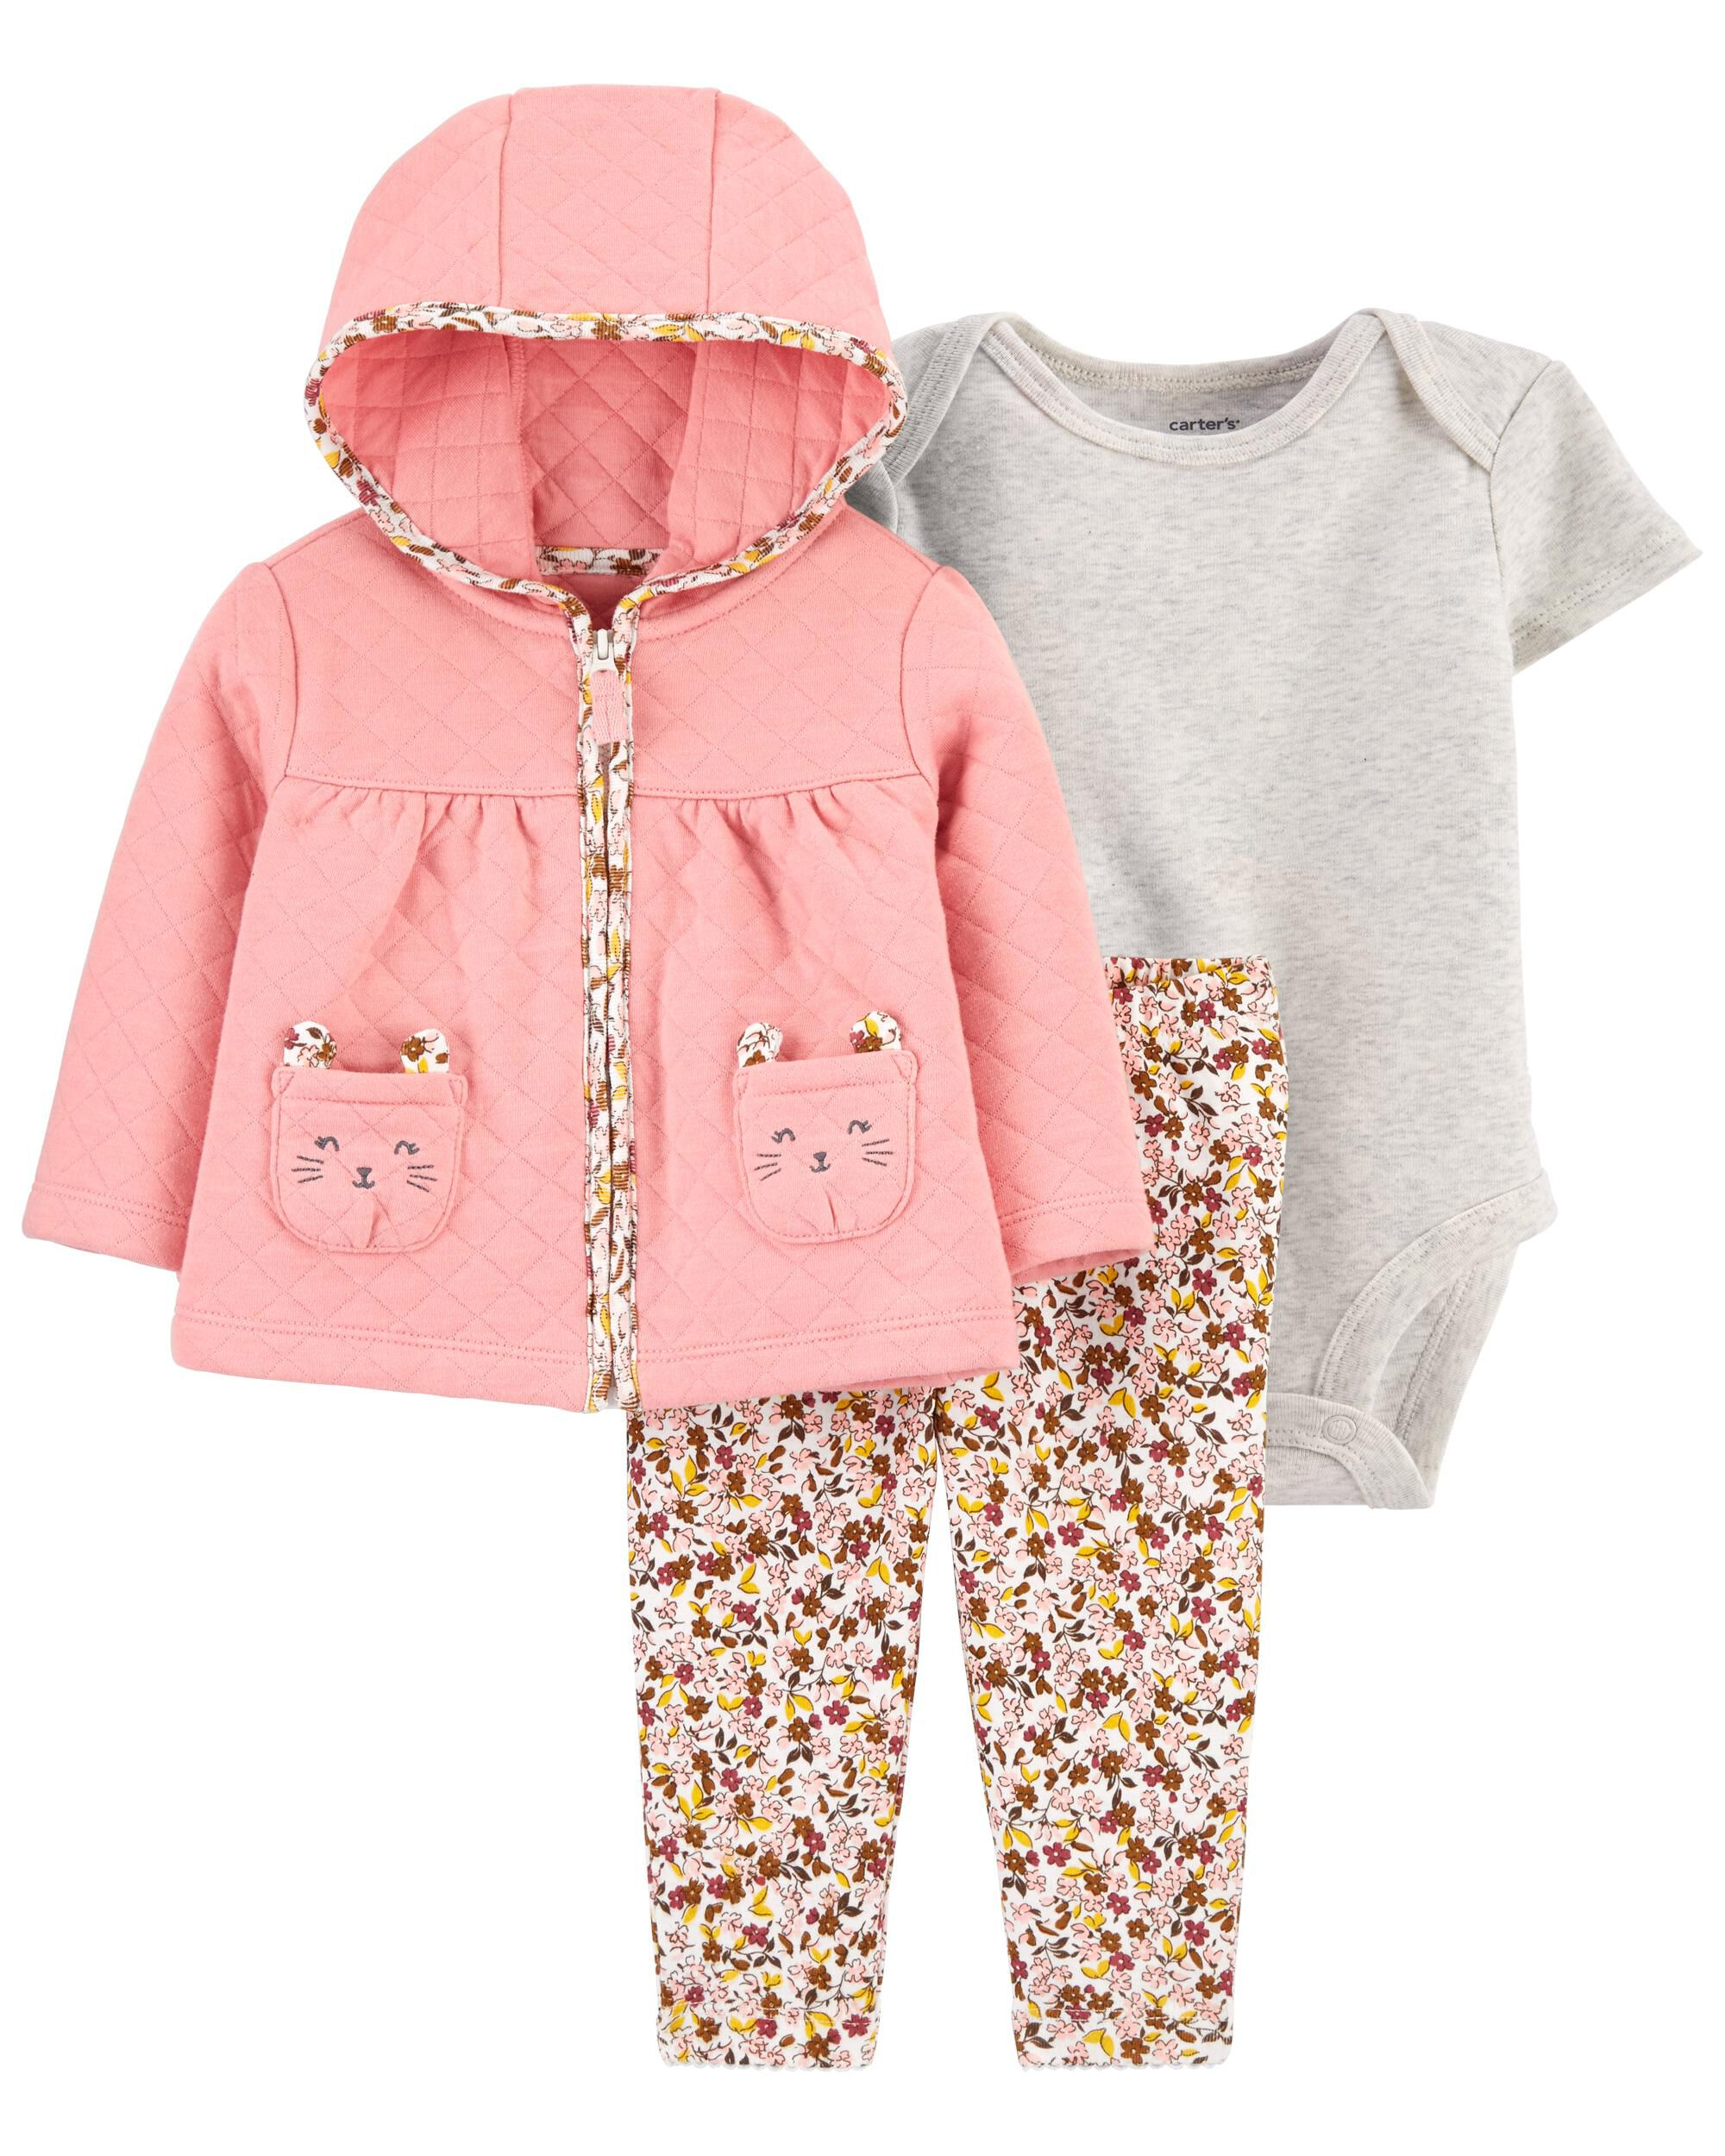 Carters 3-Piece Quilted Little Cardigan Set